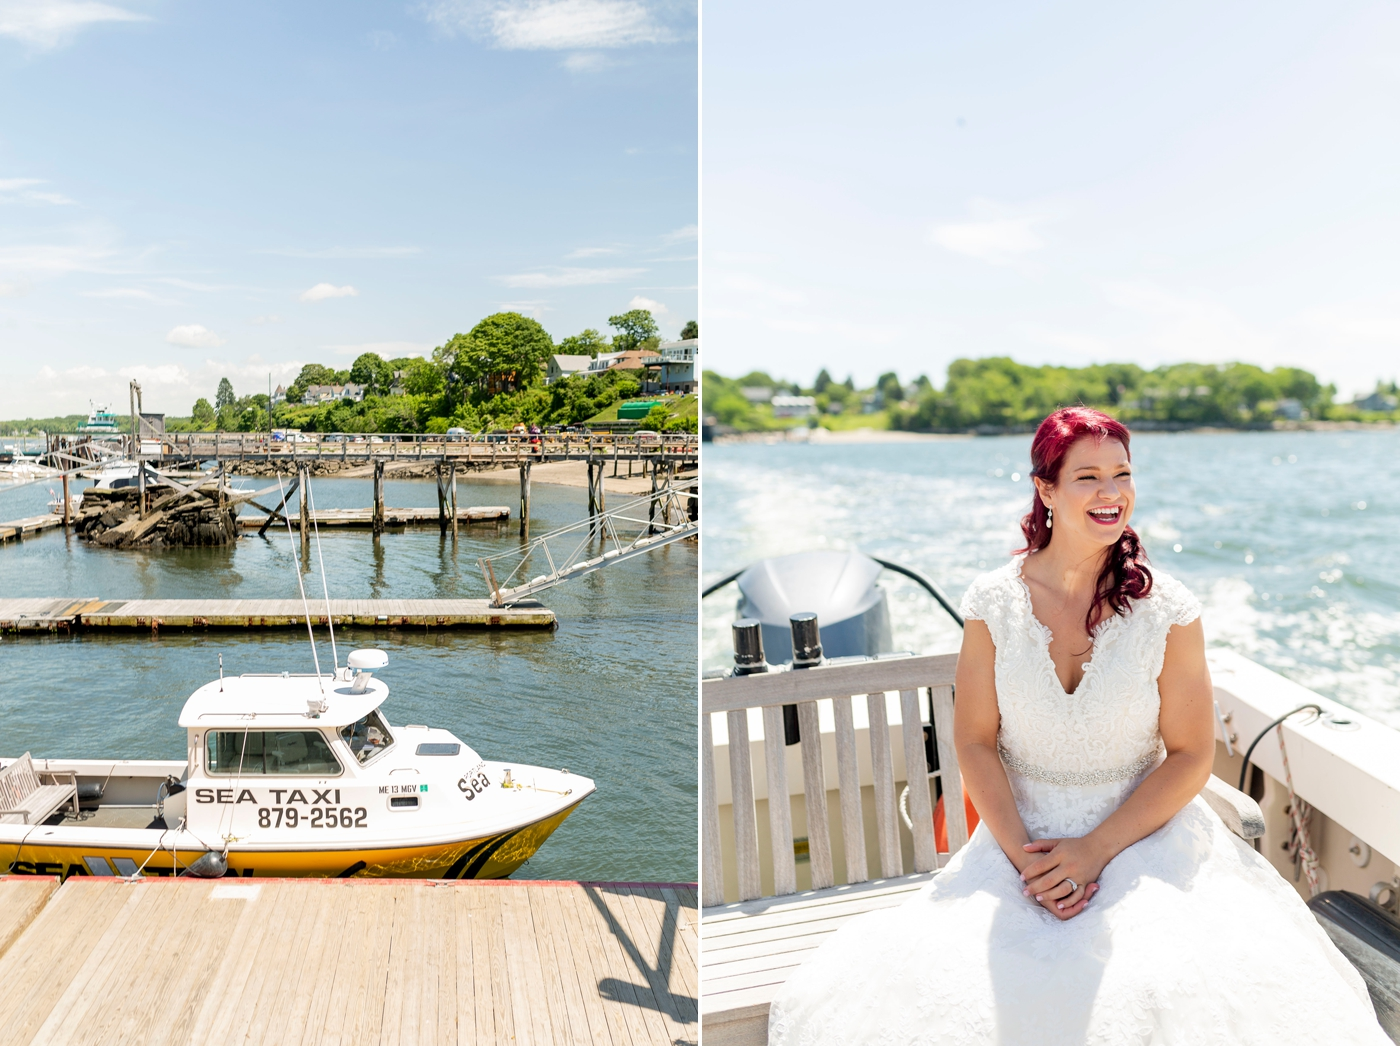 winnie couture wedding dress, water taxi, candid wedding, documentary wedding photographer, candid wedding photographer, Inn on Peaks Island, Casco Bay, Portland Maine, Maine Wedding, Maine Destination Wedding, Peaks Island Wedding, Maine Wedding Photographer, peaks island Maine wedding, wedding in Maine, destination wedding photographer, peaks island Maine, Portland Maine summer, blue wedding colors, islands of casco bay, casco bay island ferry, old port wedding photos, greater portland